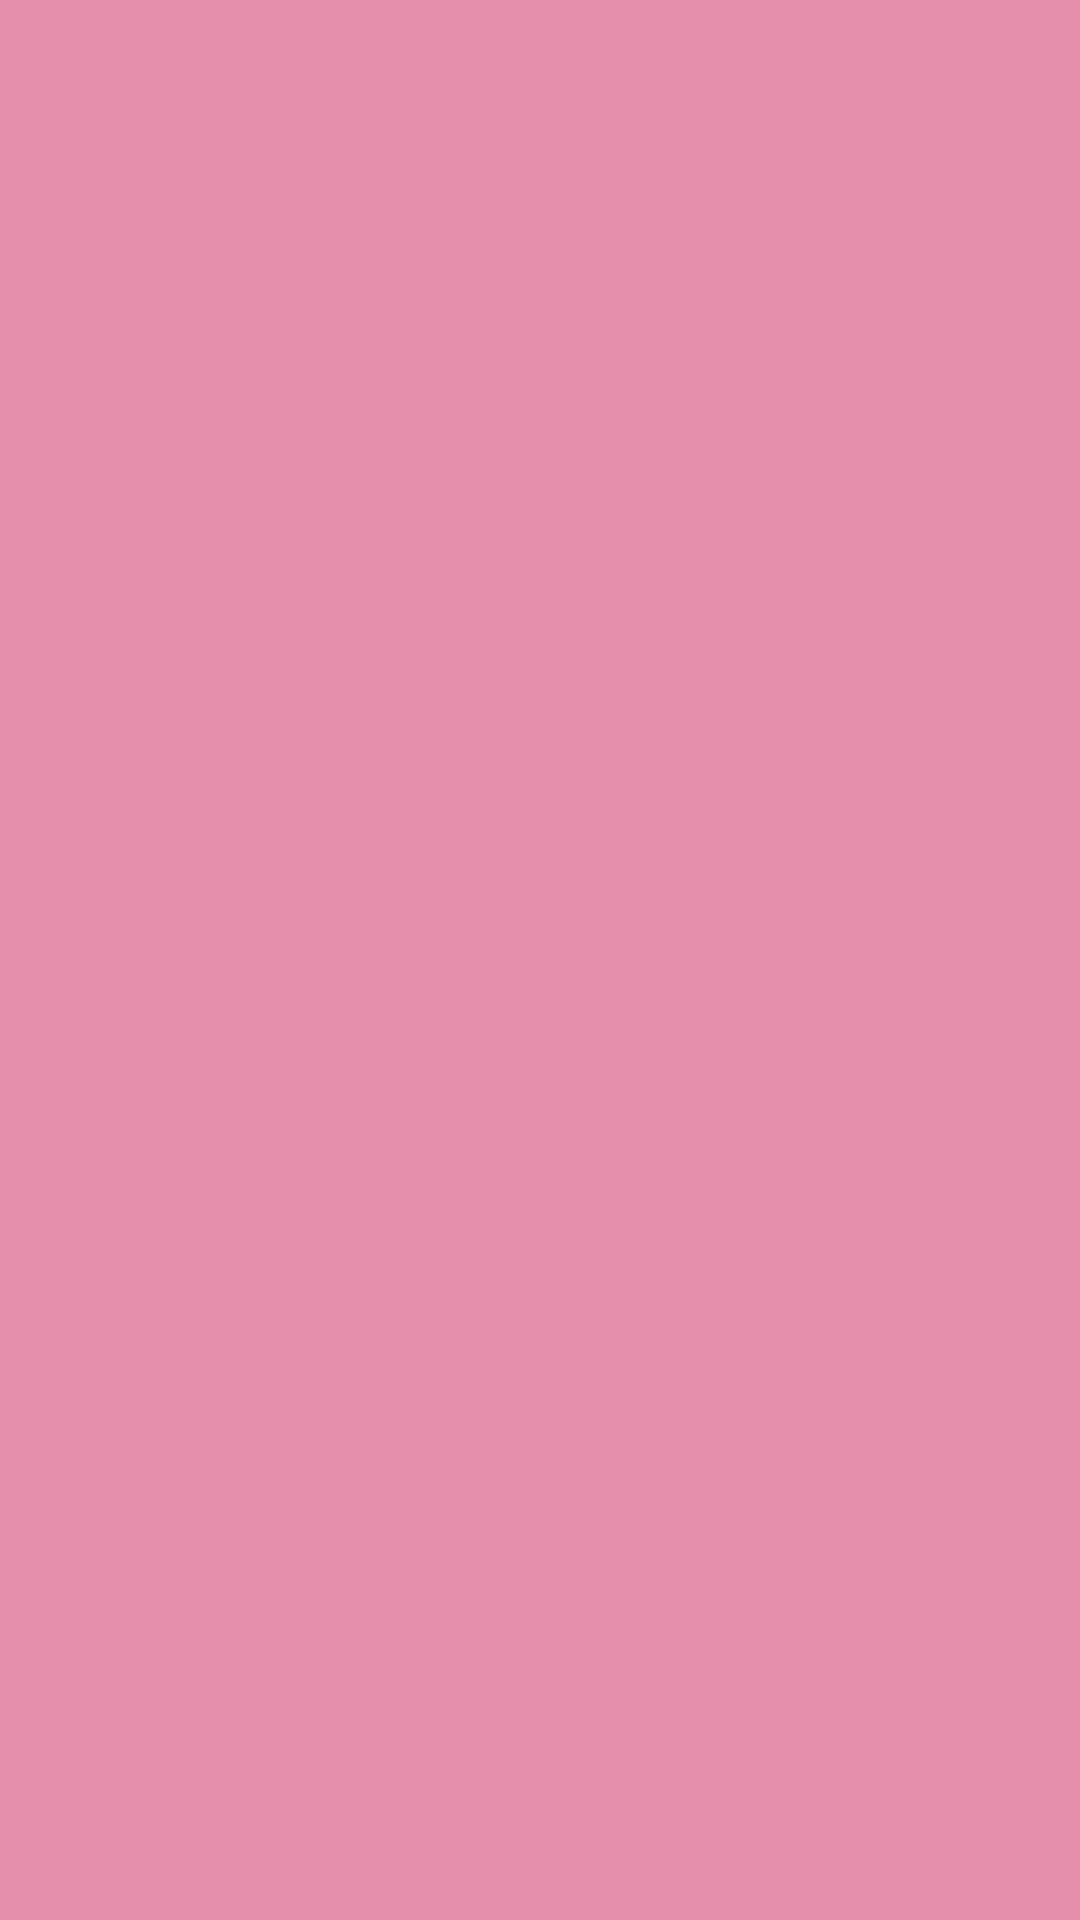 1080x1920 Charm Pink Solid Color Background